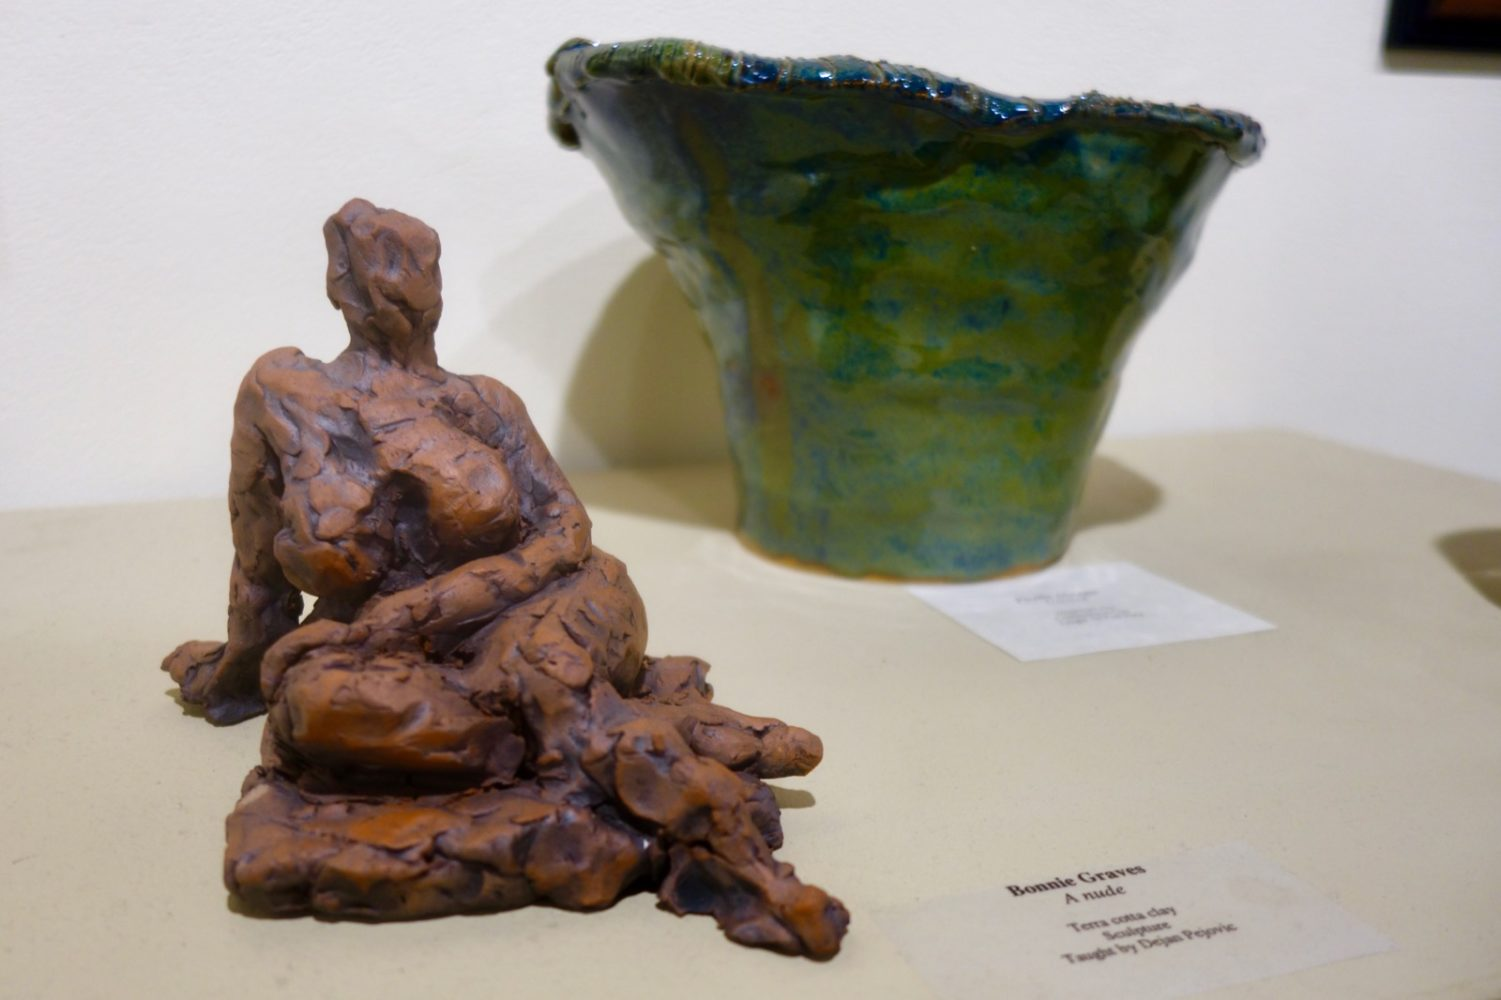 Bonnie Graves Nude Sculpture at Creative Workshop in Rochester, New York